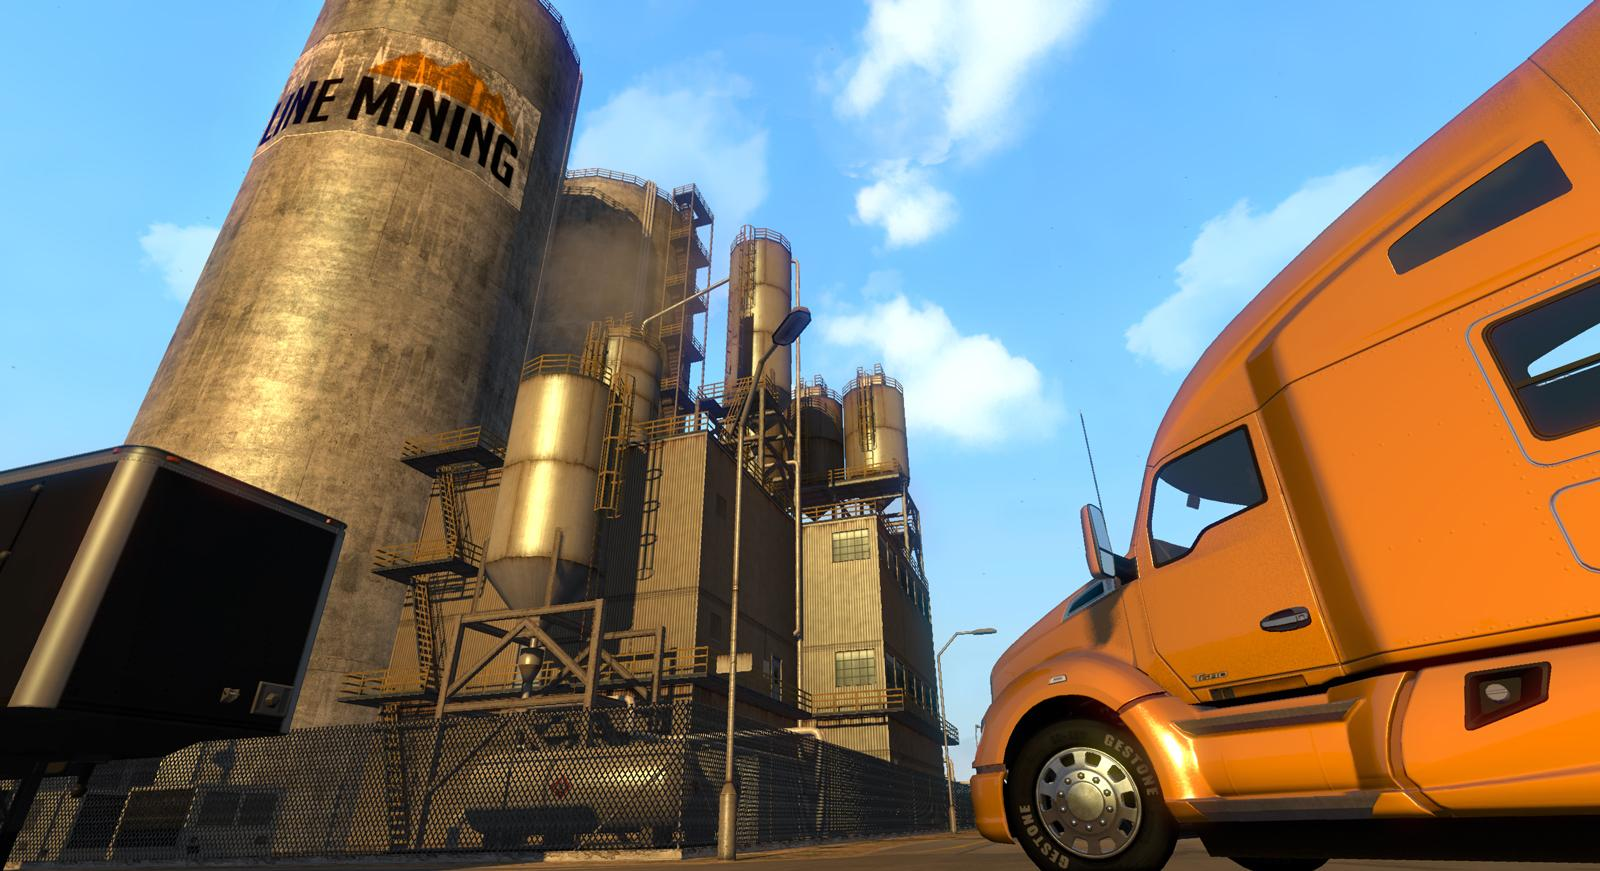 1 14 UPDATE NEWS AND ACROSS THE DESERT IN ATS GAME (3)